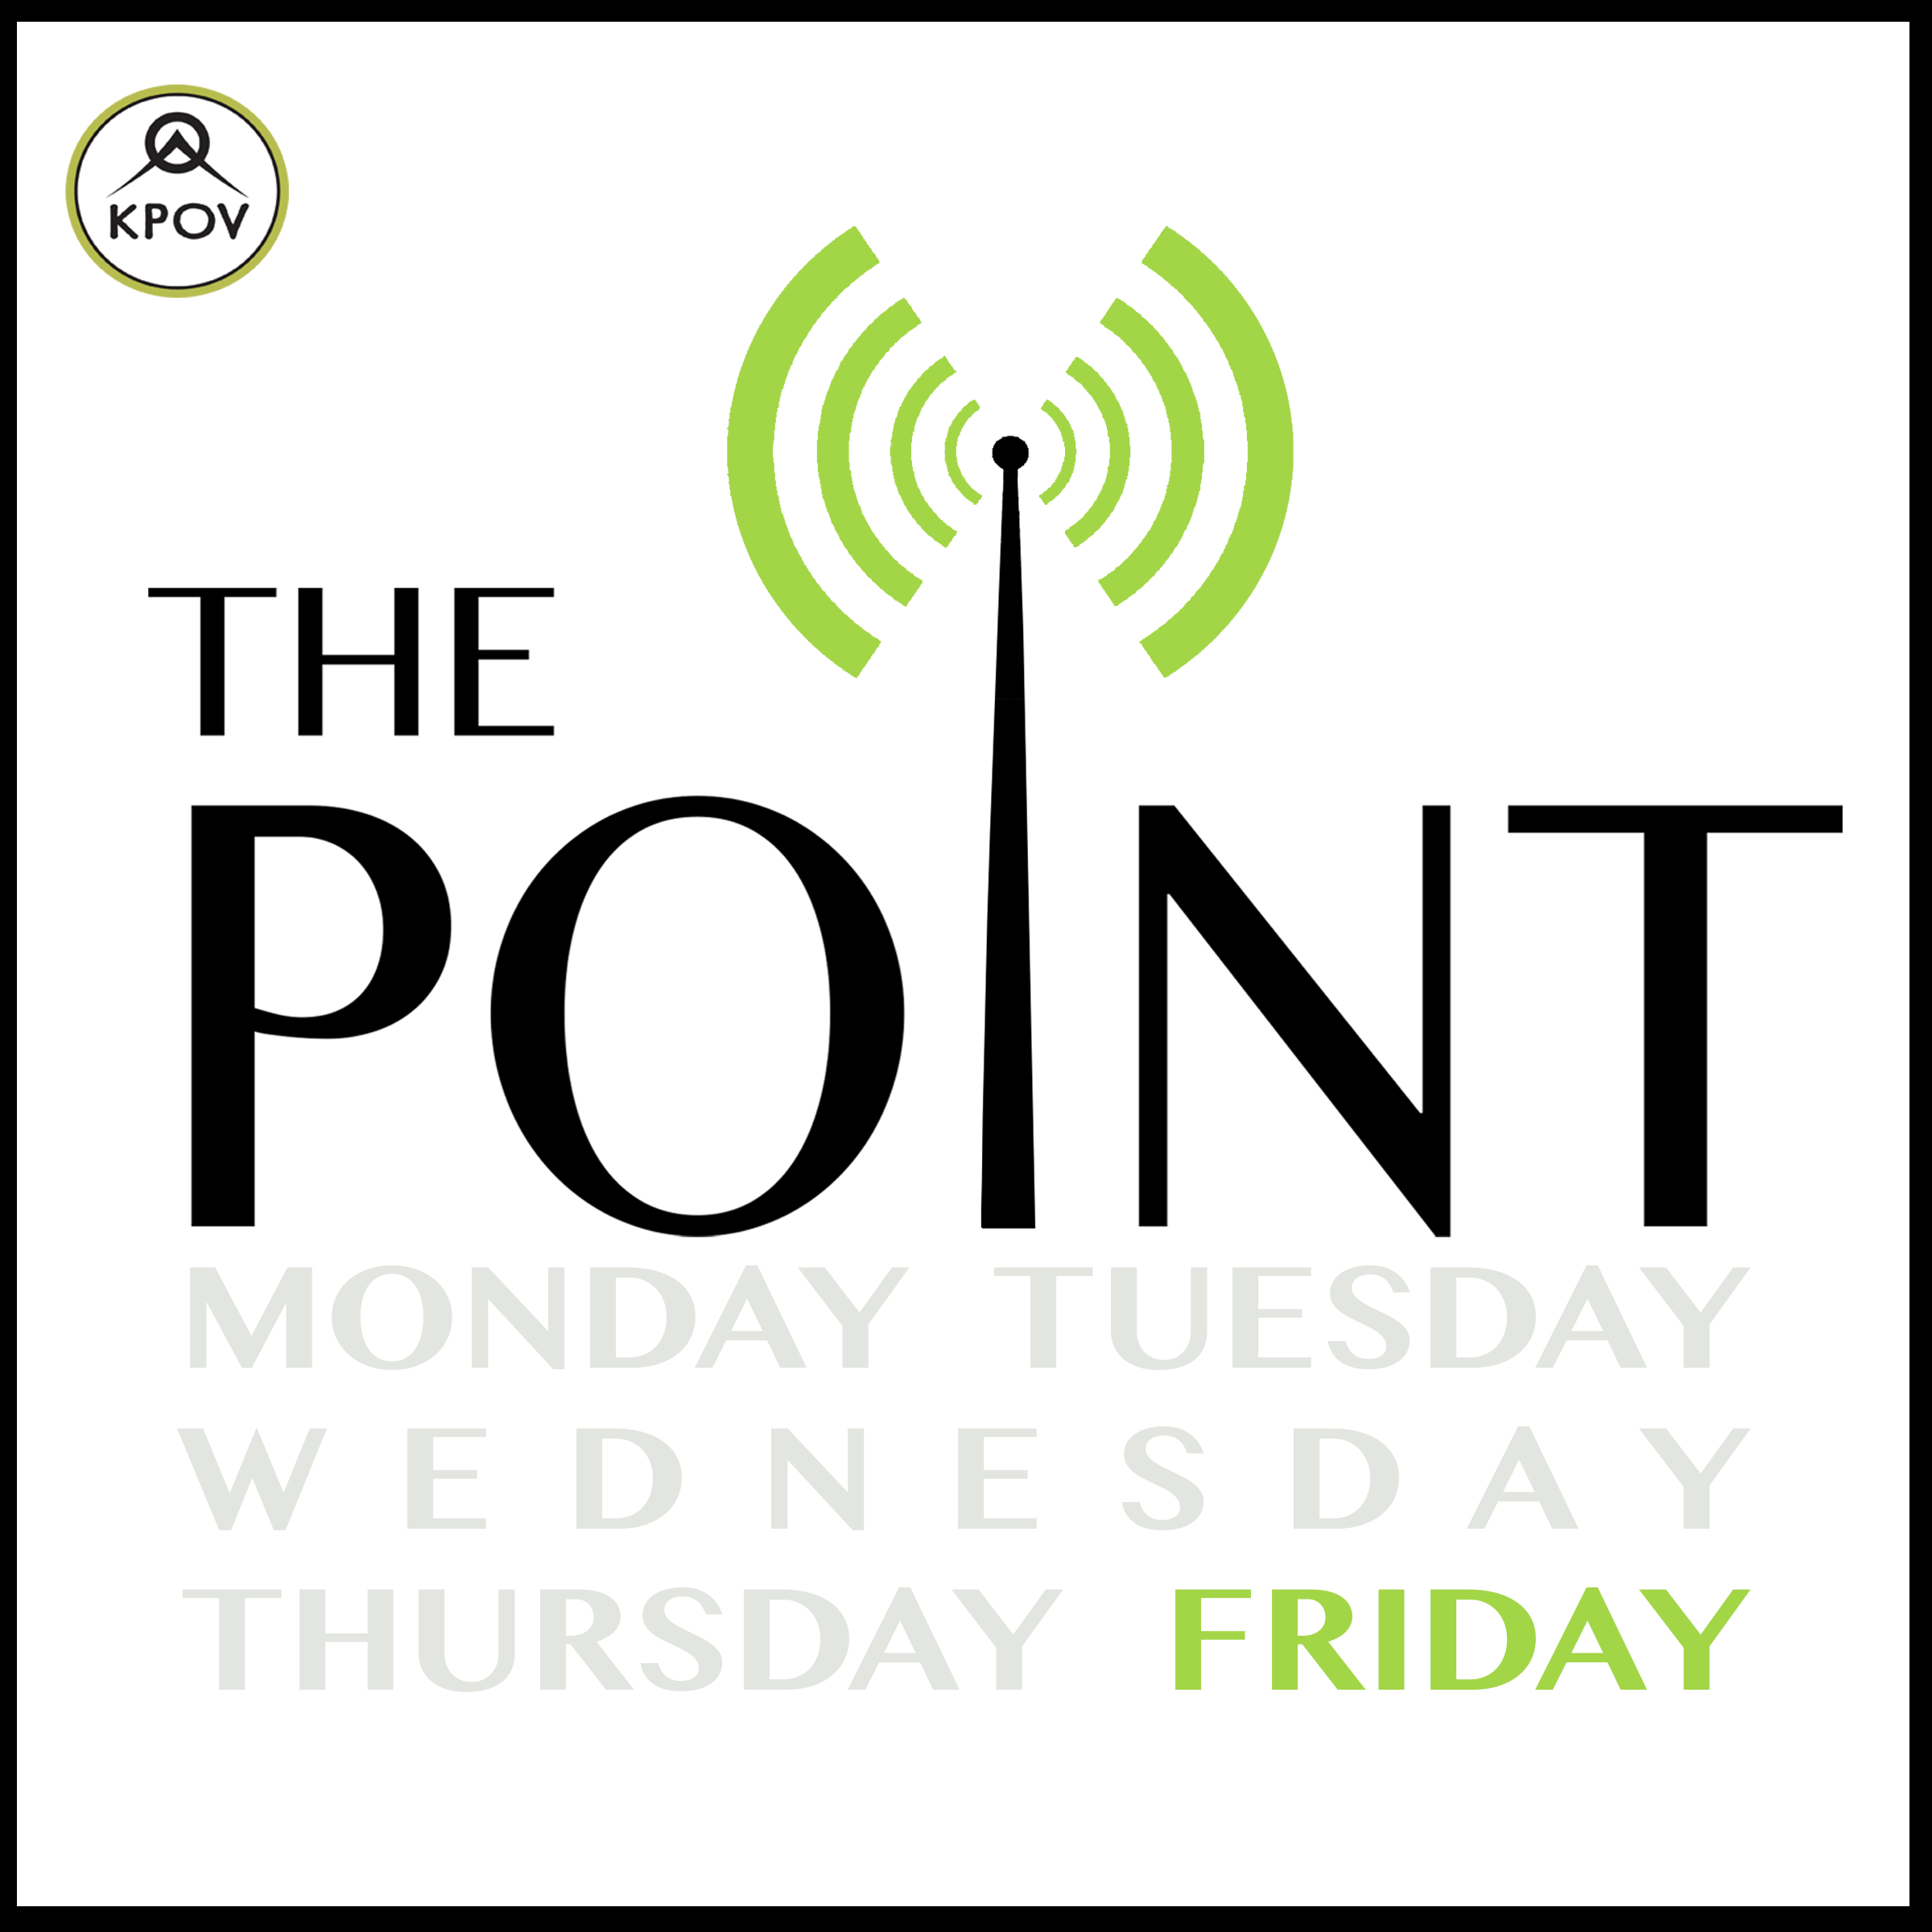 - The Point podcasts feature select segments and interviews from KPOV's weekday community affairs program. The Point is the local issues, arts, stories, and culture show for Bend, Redmond, Sisters, Prineville, everywhere in between and beyond – produced entirely by our Central Oregon community and KPOV.The Friday Point is hosted by Carolyn Esky .